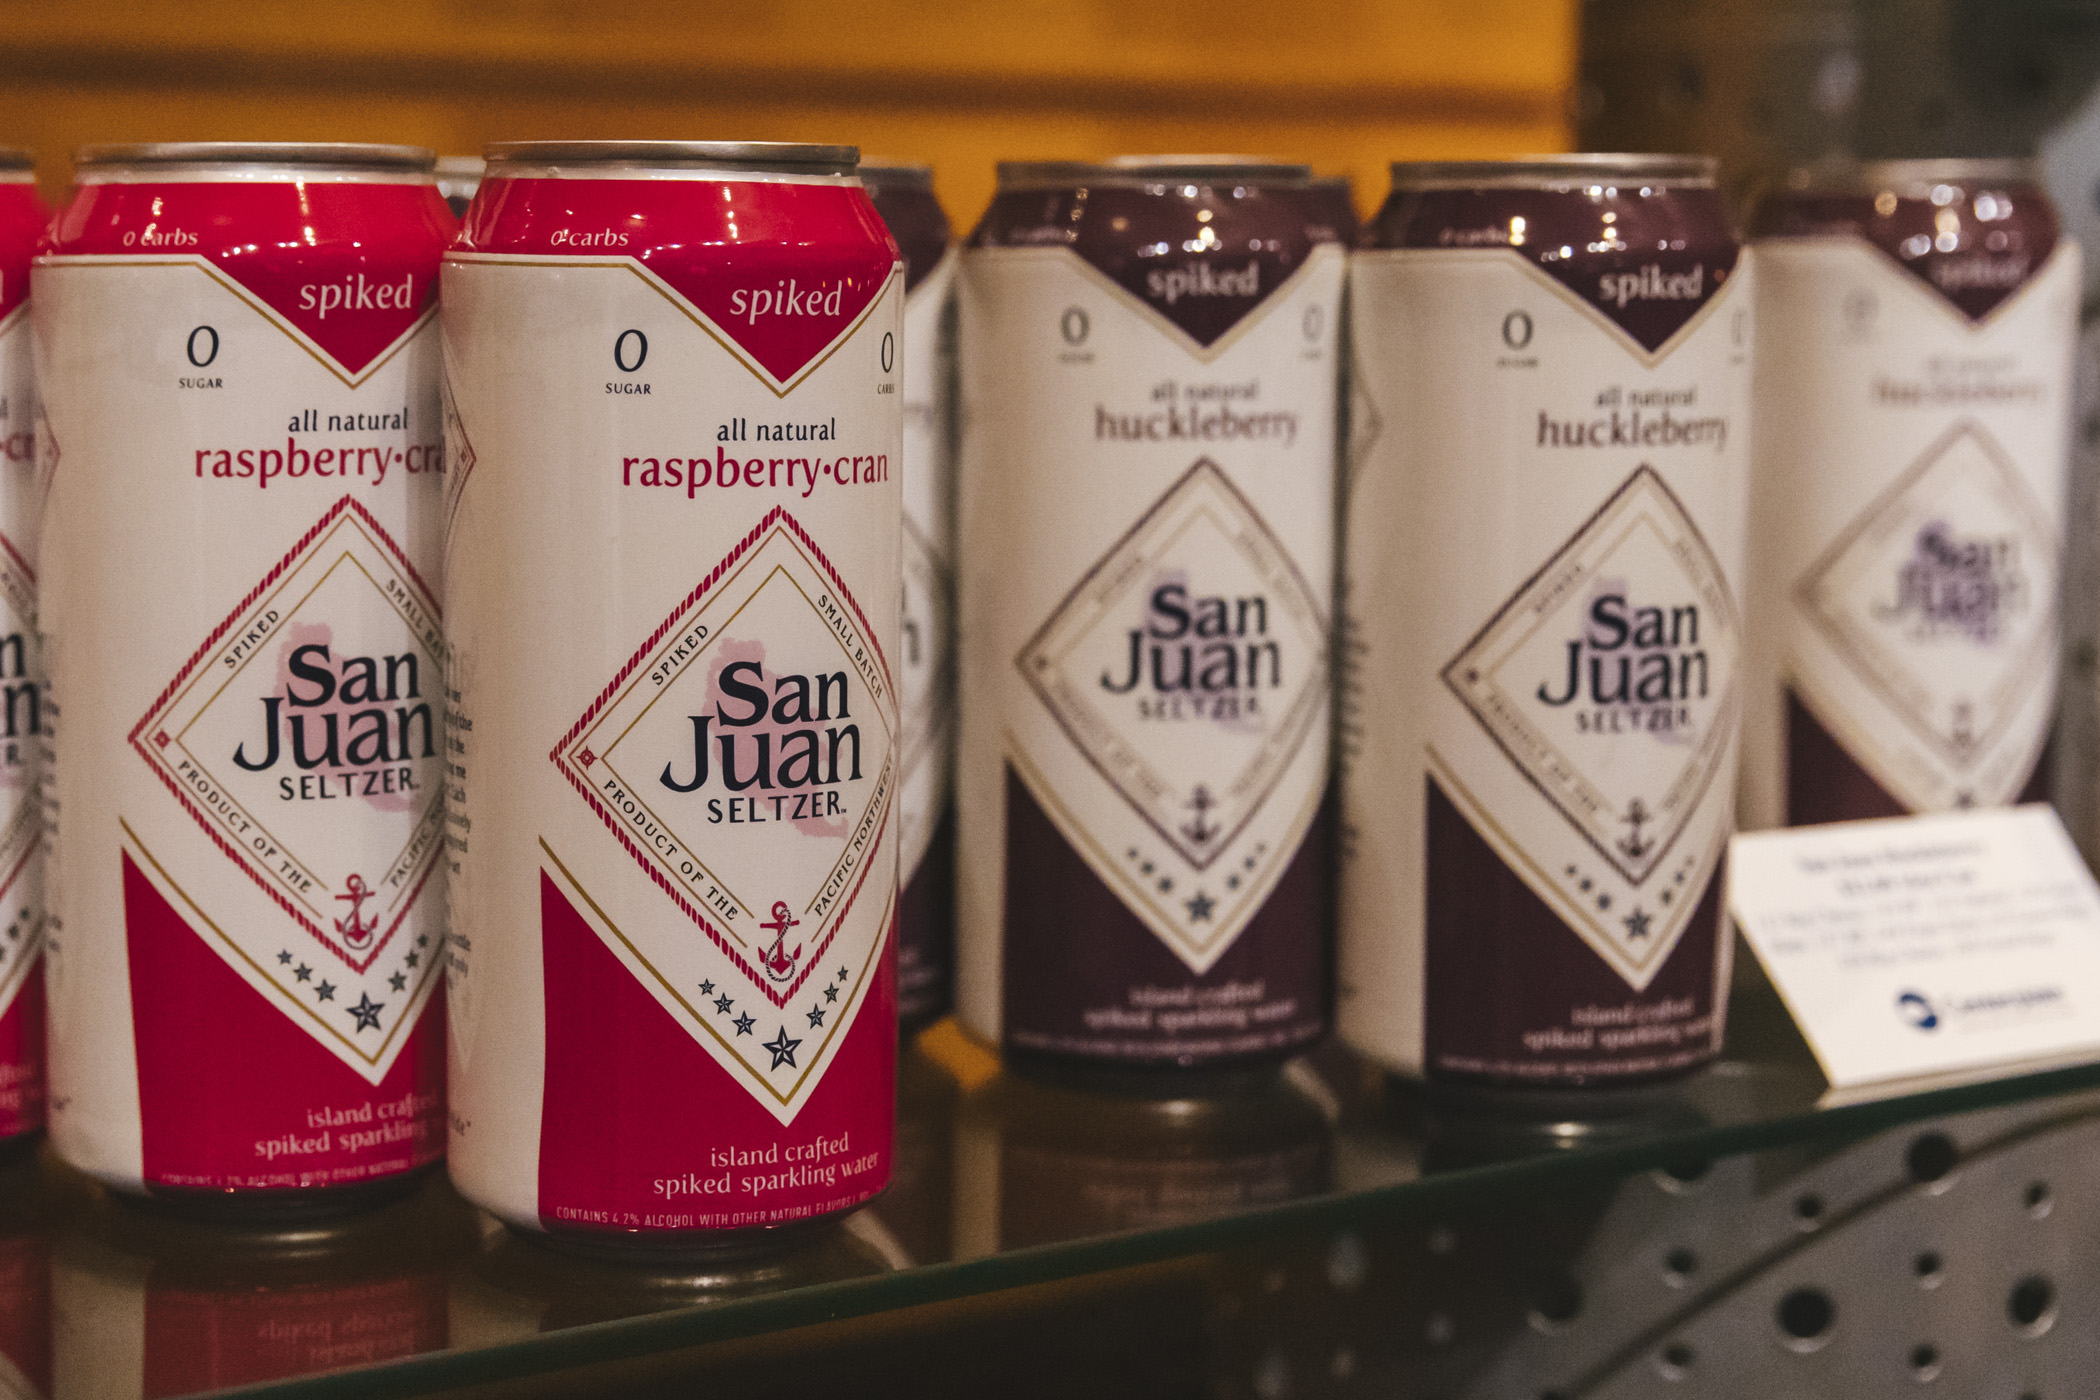 San Juan Seltzer.{ }We snuck in a little preview of the beer, wine and spirits offerings for the 2020 Seattle Mariners season at T-Mobile Park! Home Opener is March 26 at 1:10 p.m. agains the Rangers. Go M's! (Image: Sunita Martini / Seattle Refined)